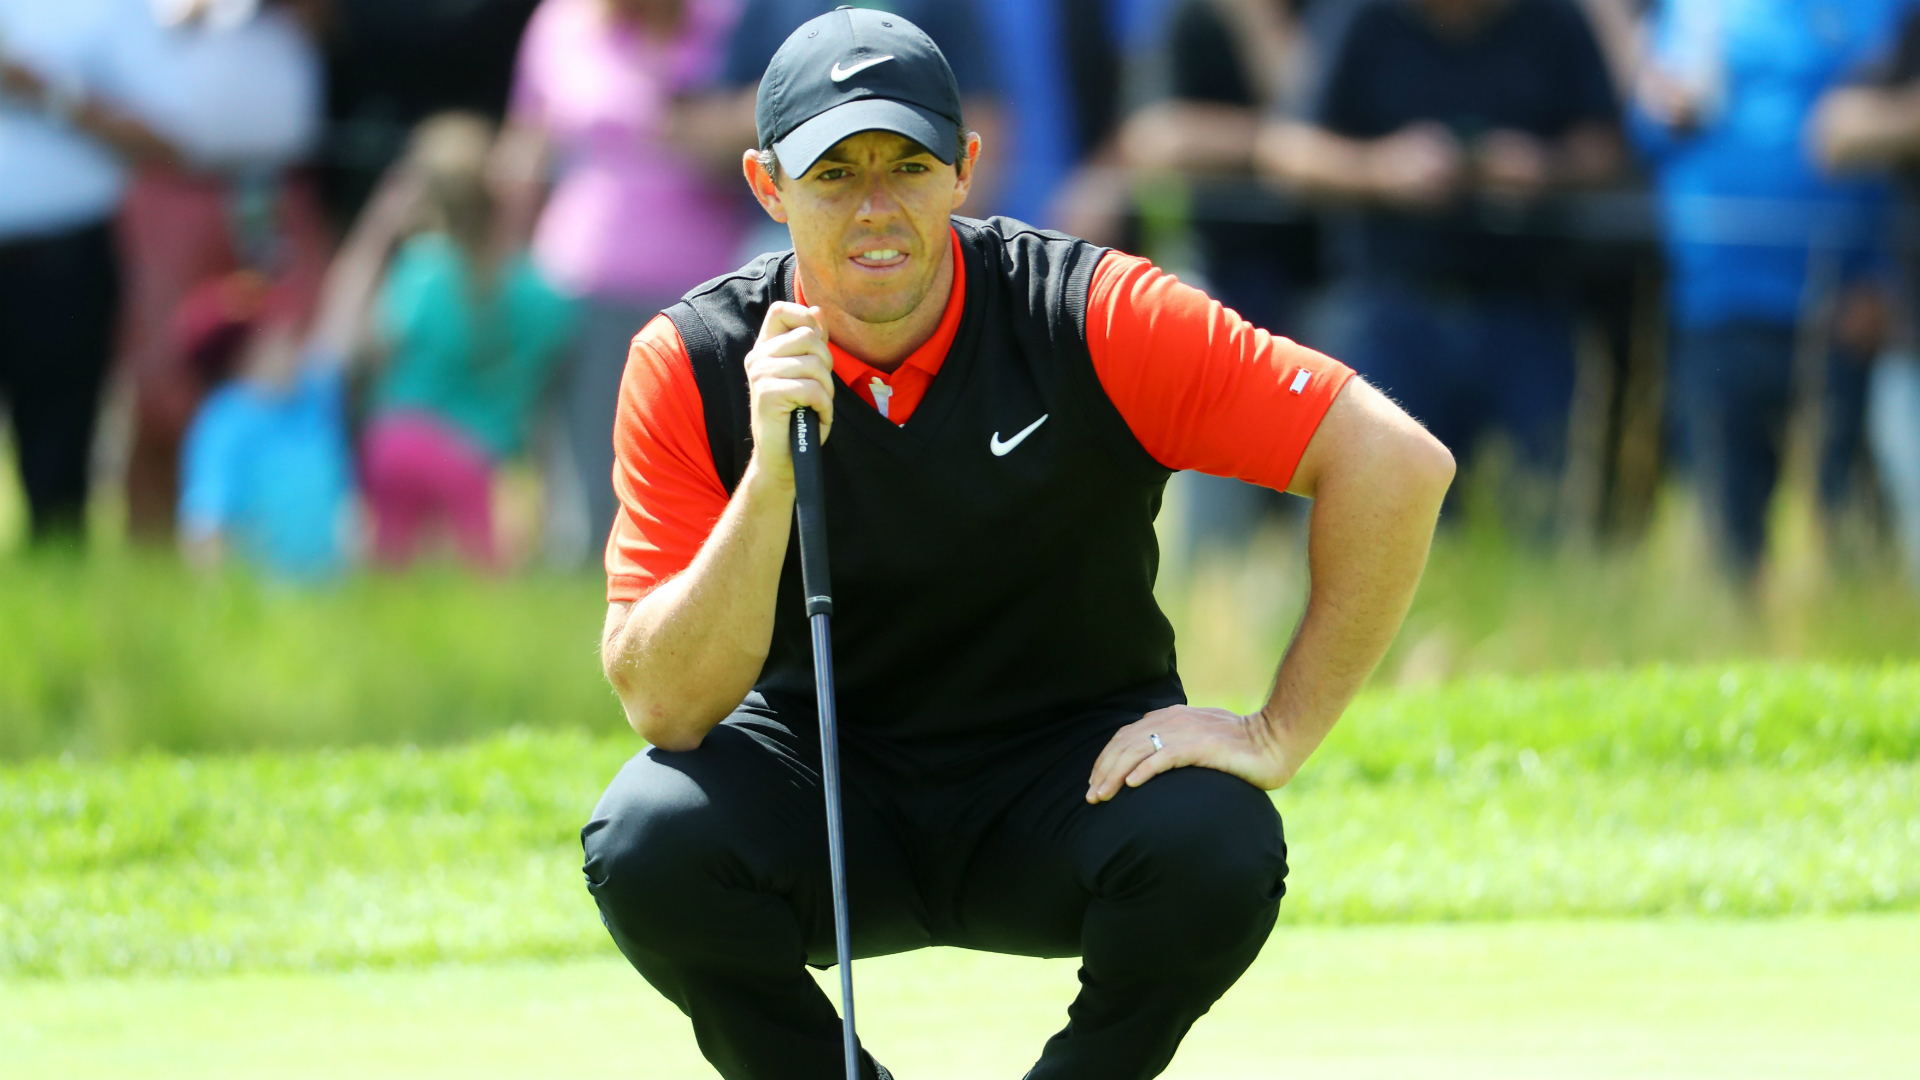 McIlroy hopes late birdie is turning point at US PGA